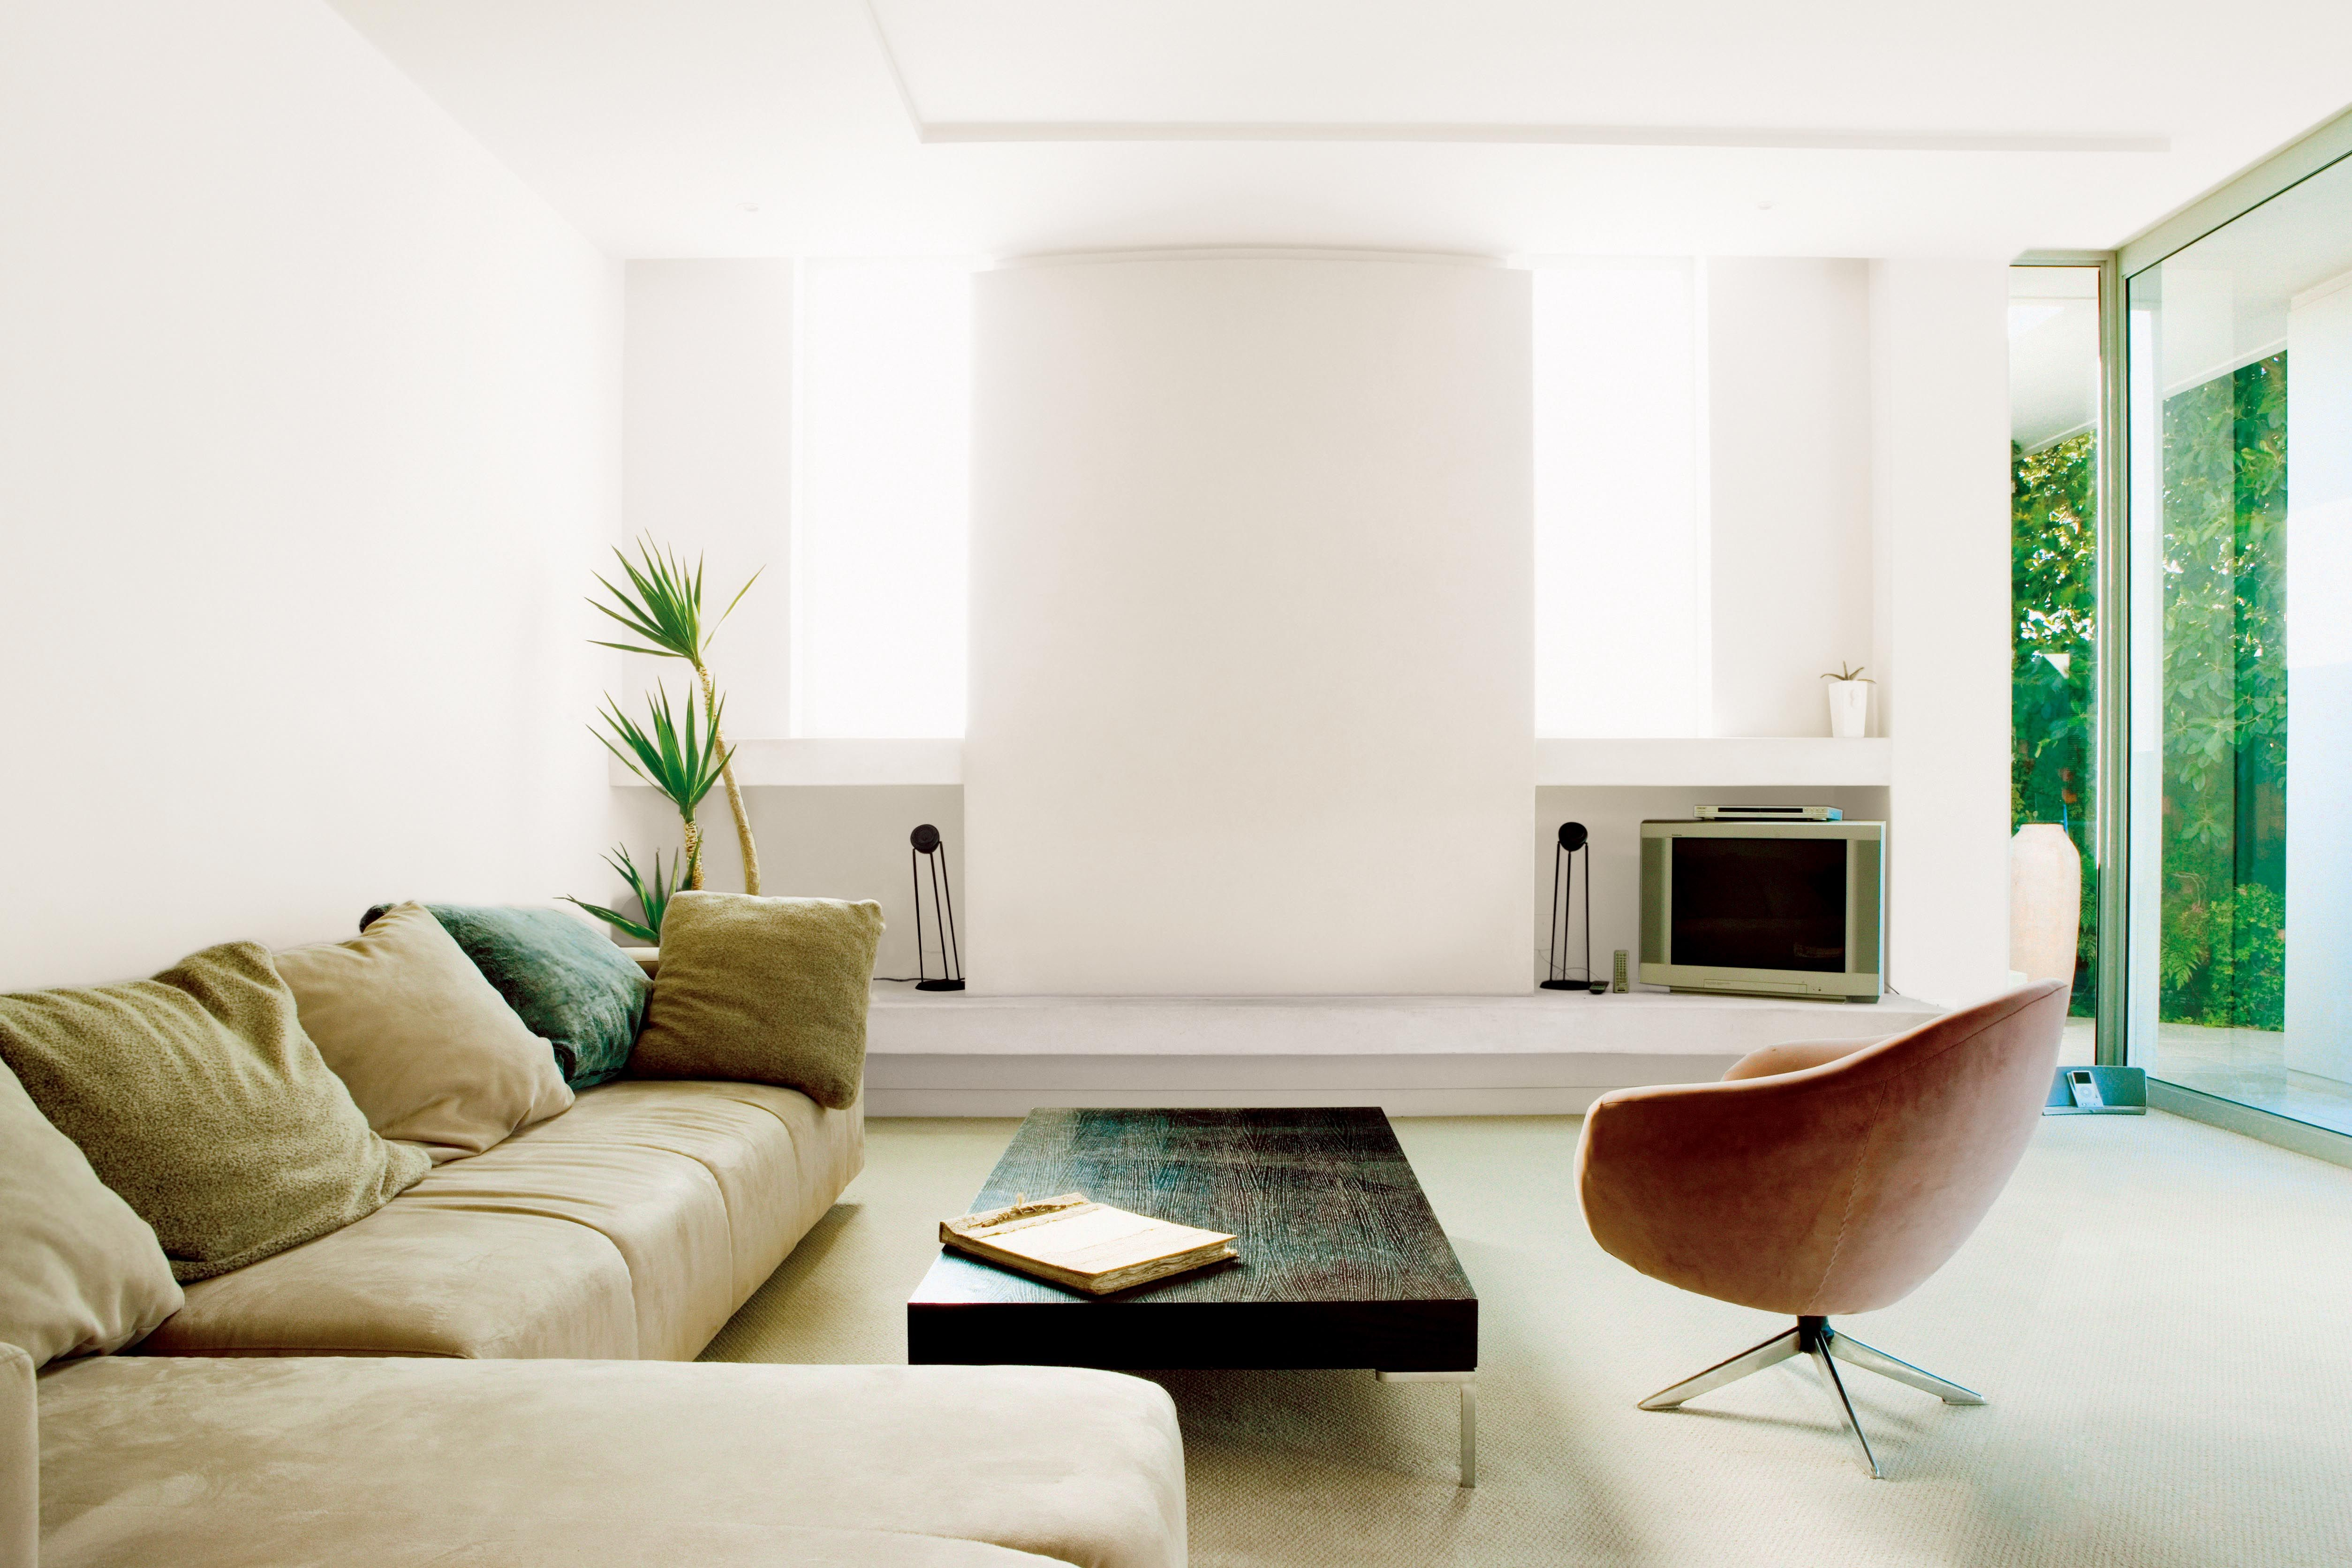 Contemporary Living Room Design Ideas Inspiration liviing room - http://infolitico/liviing-room/ for inspiration